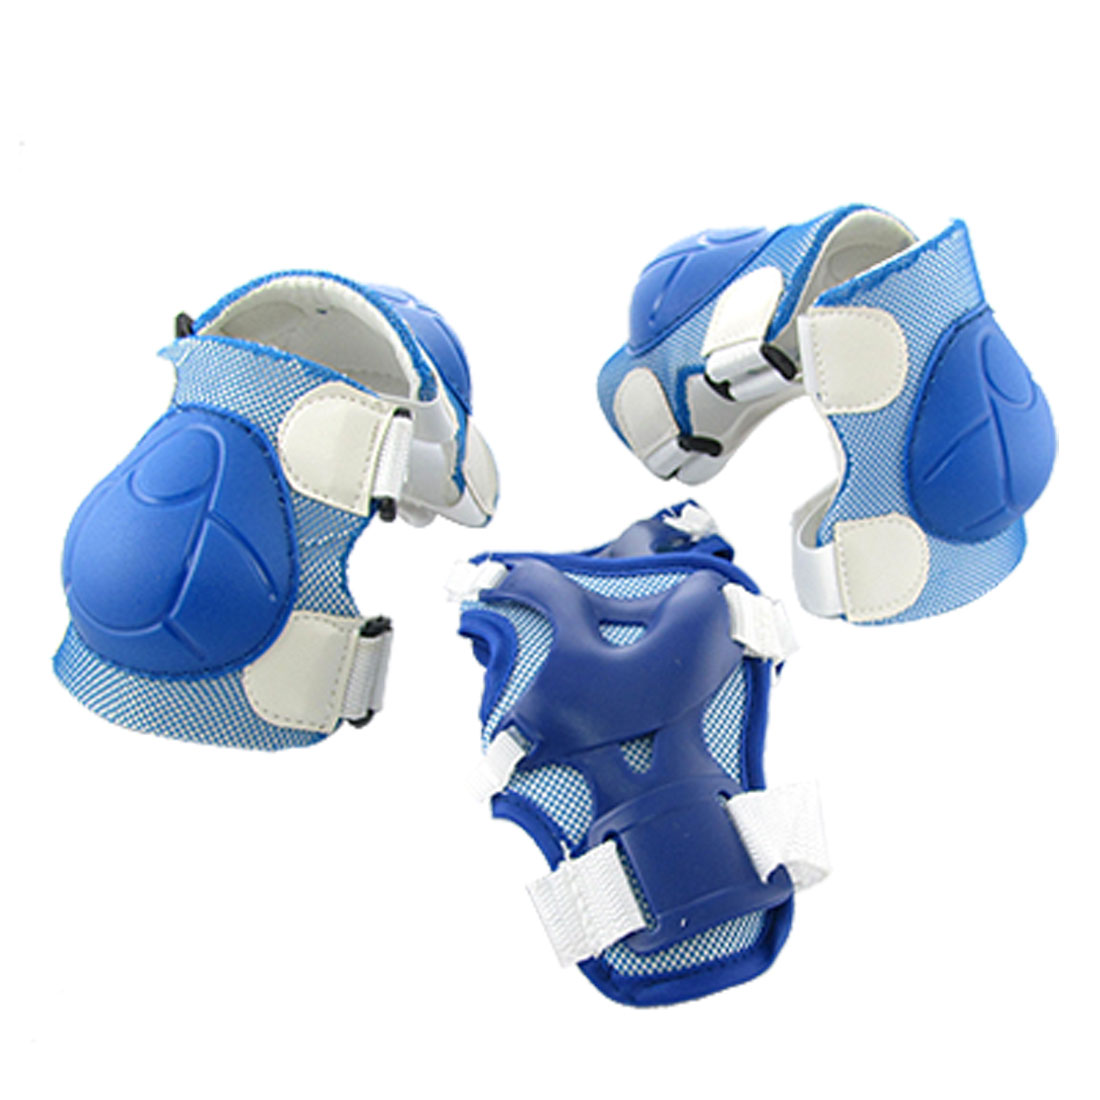 Skating Skateboarding Protective Gear Palm Wrist Guard Elbow Knee Pads Set For Kids